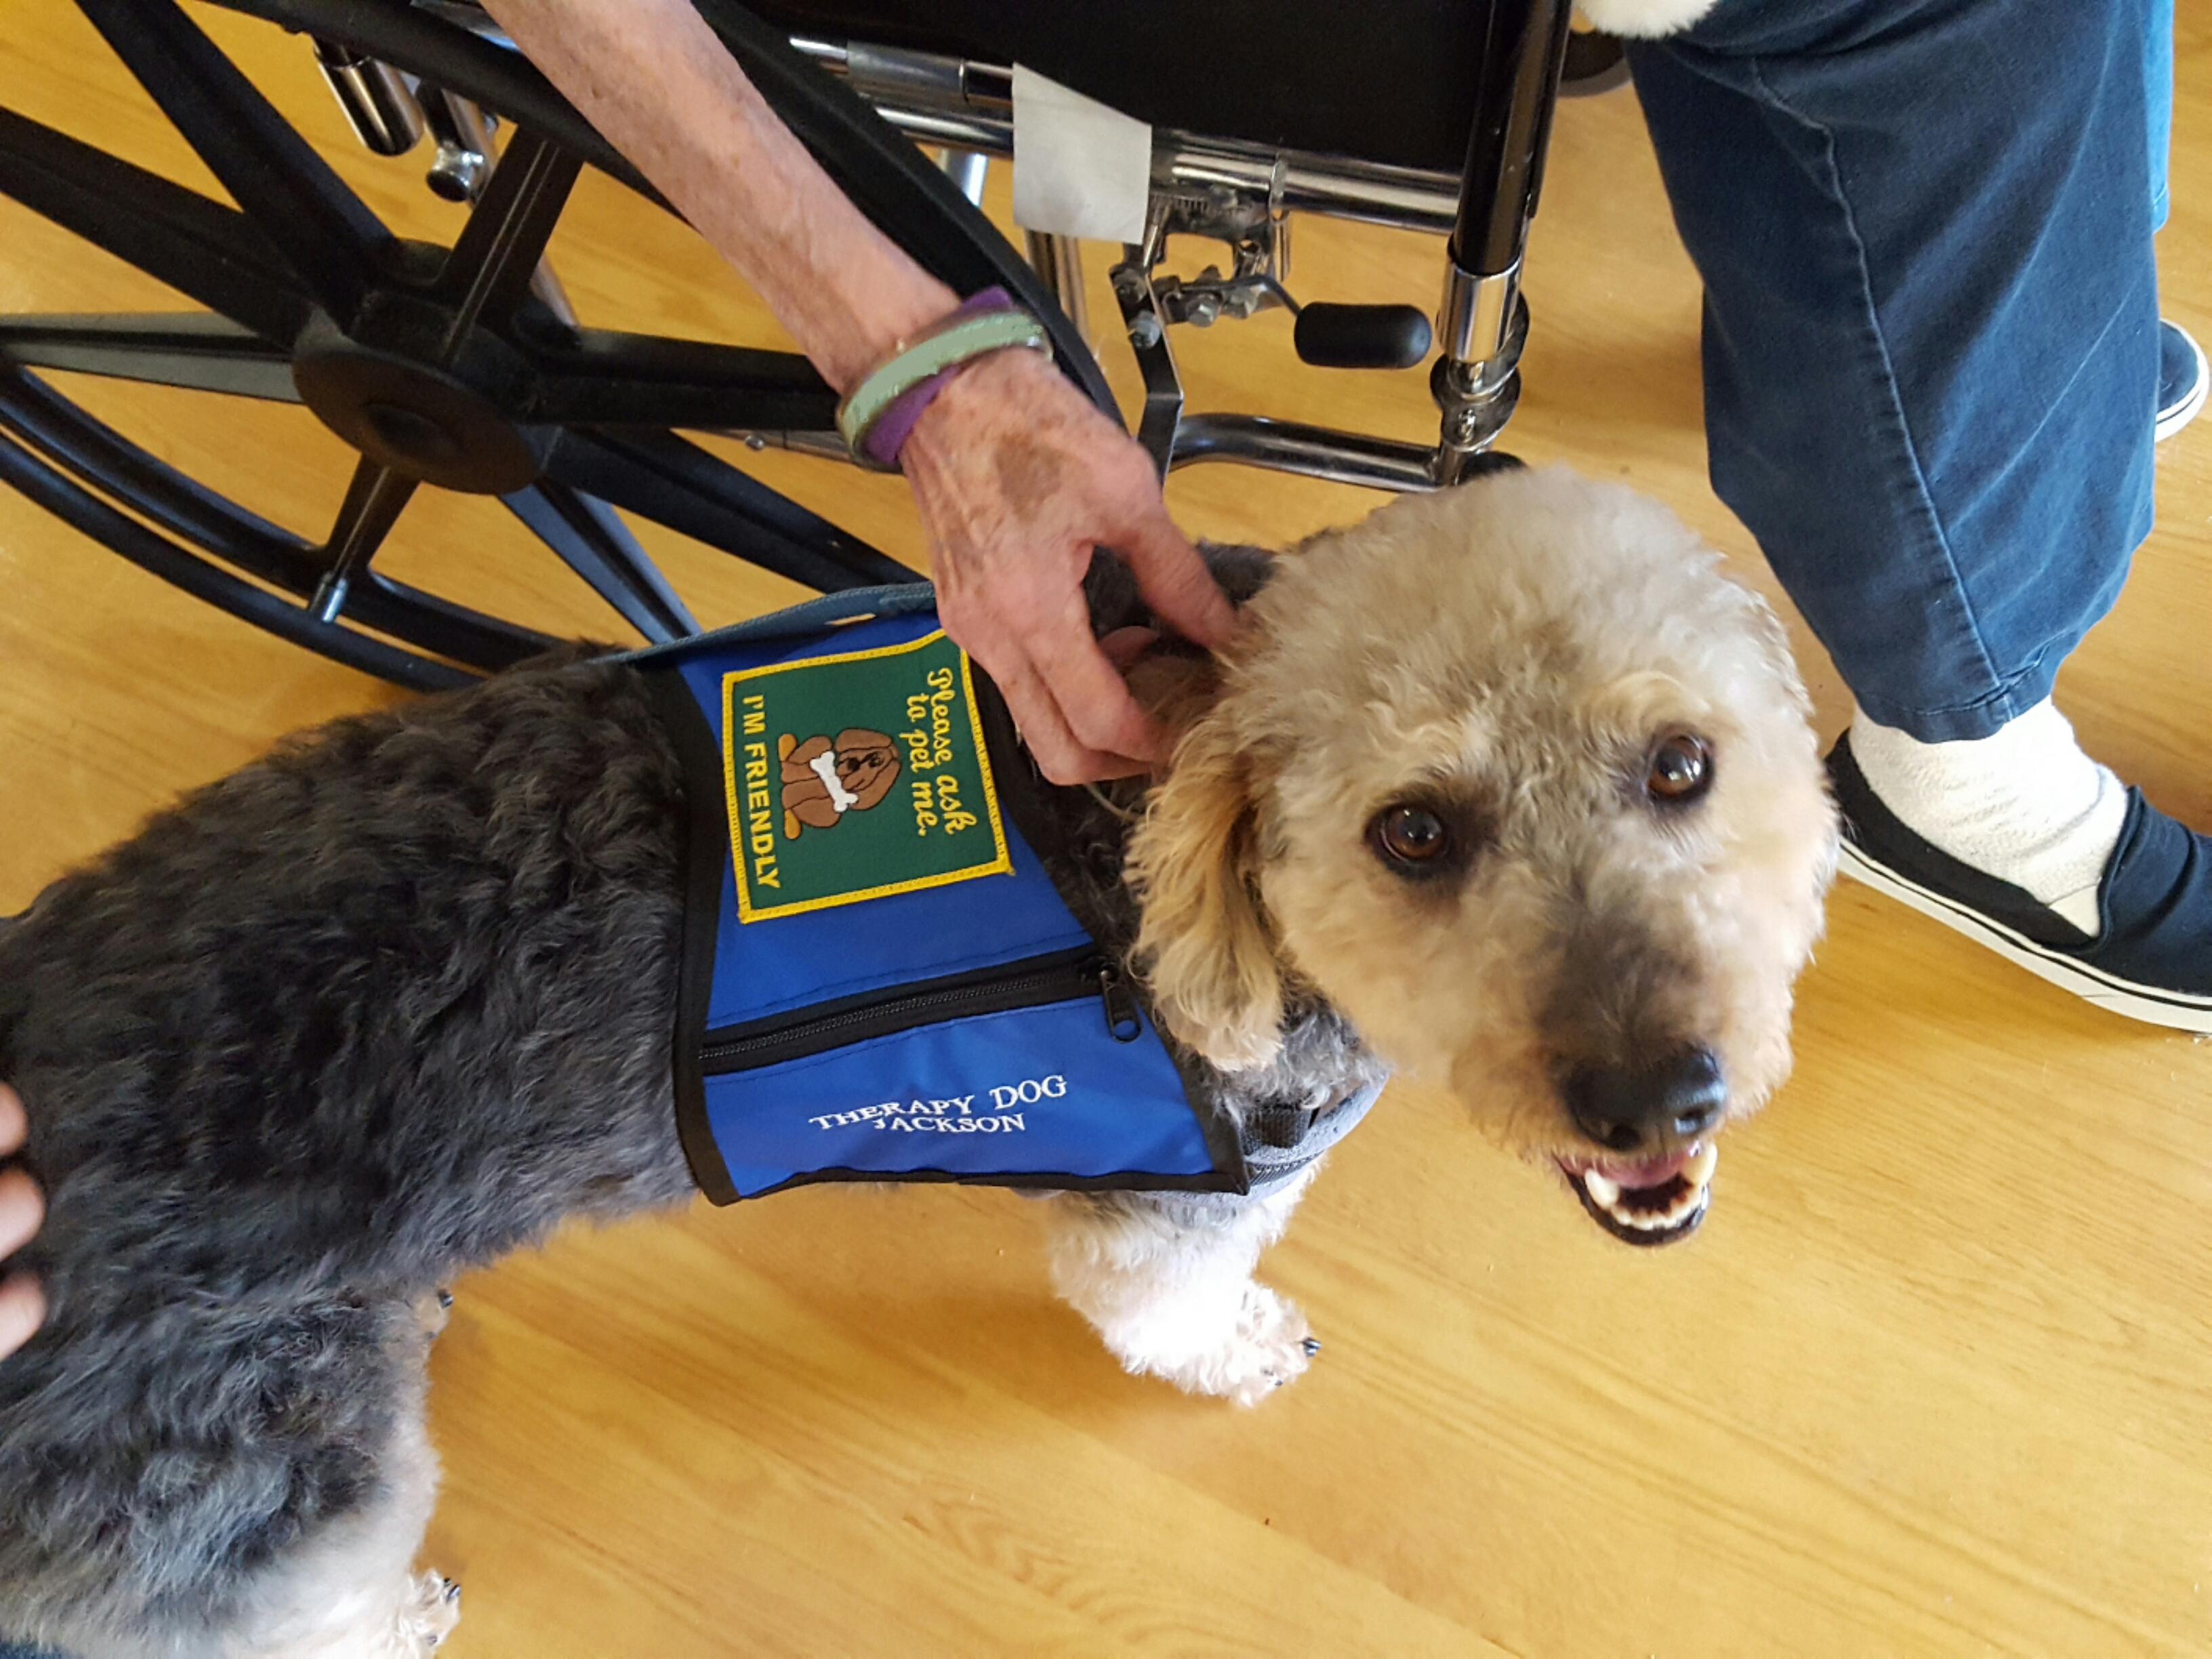 Therapy dog Jackson at work